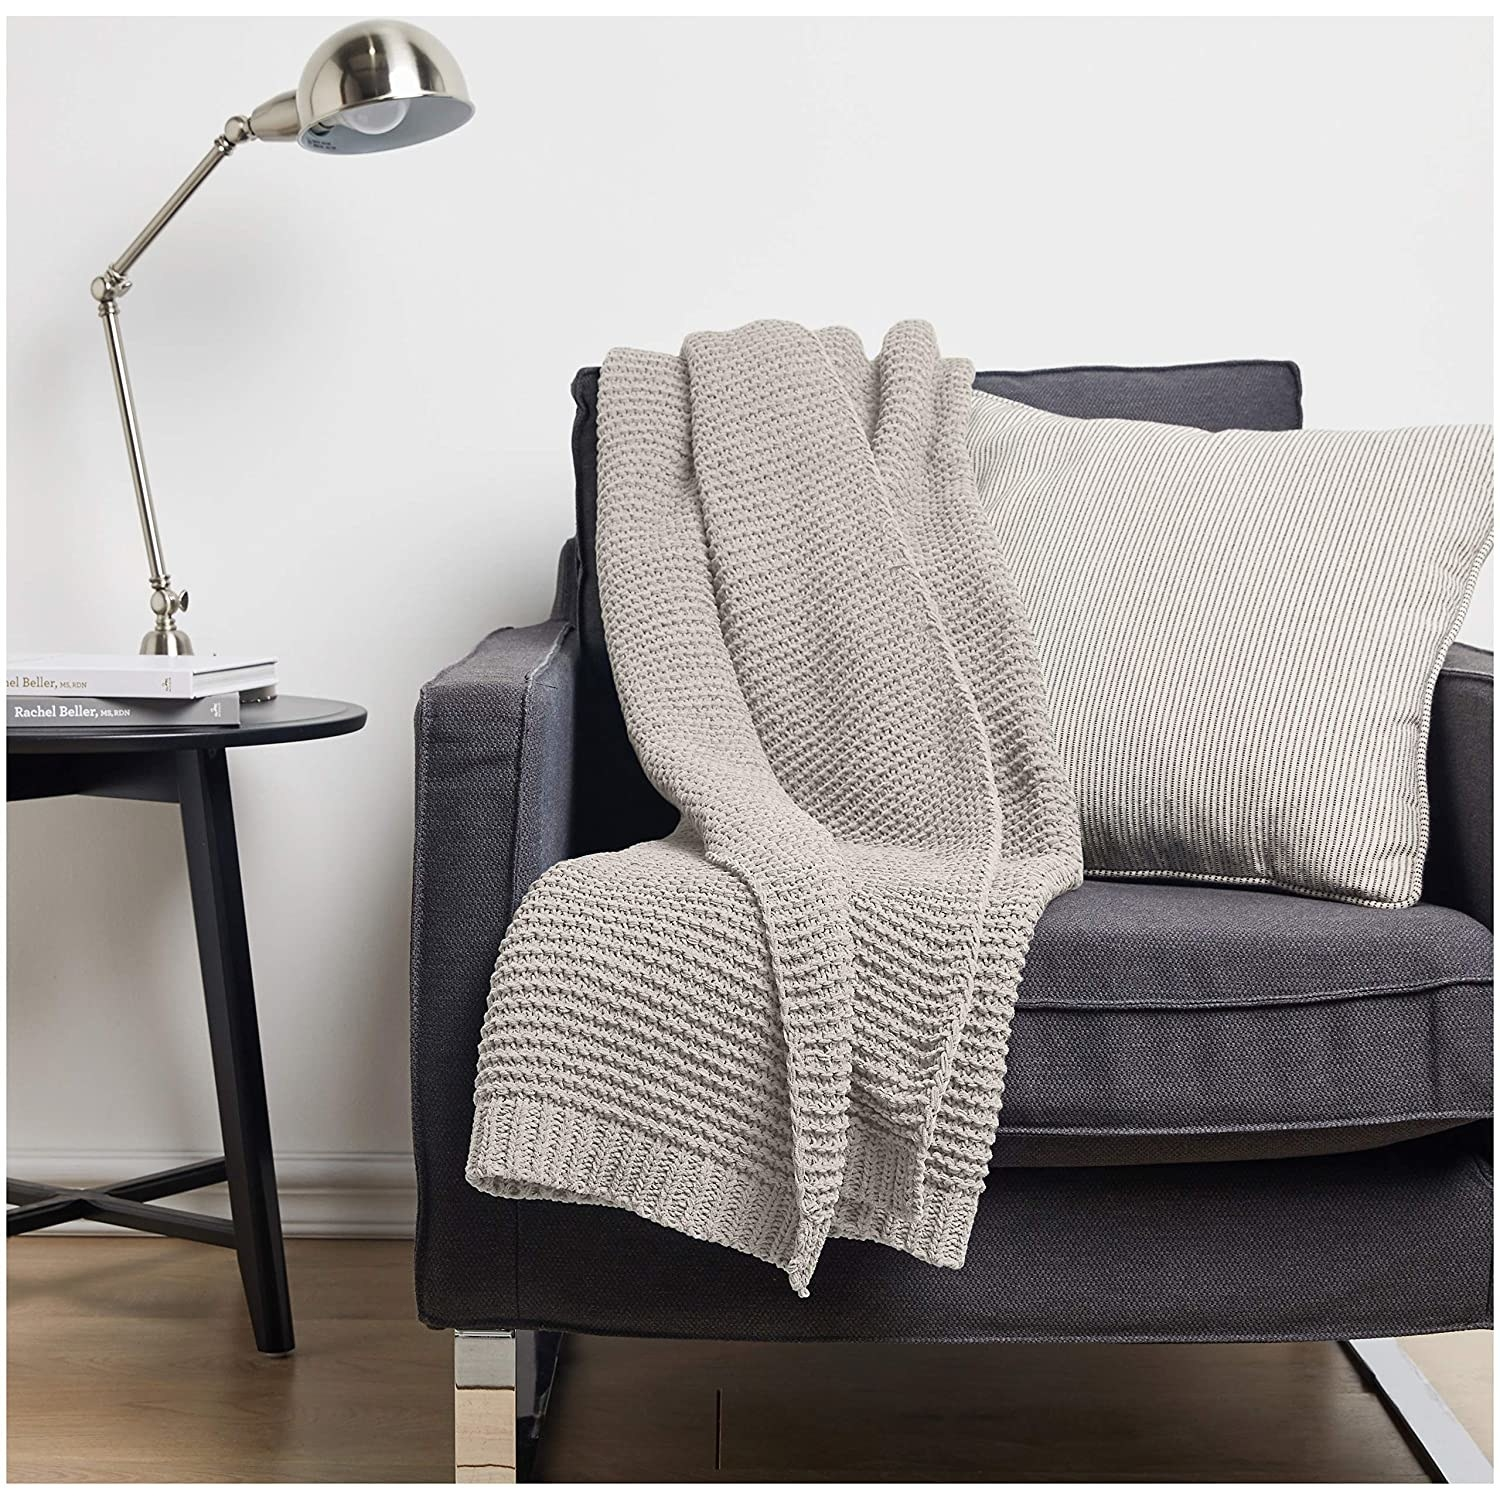 .A knitted grey throw blanket draped over a couch seat,